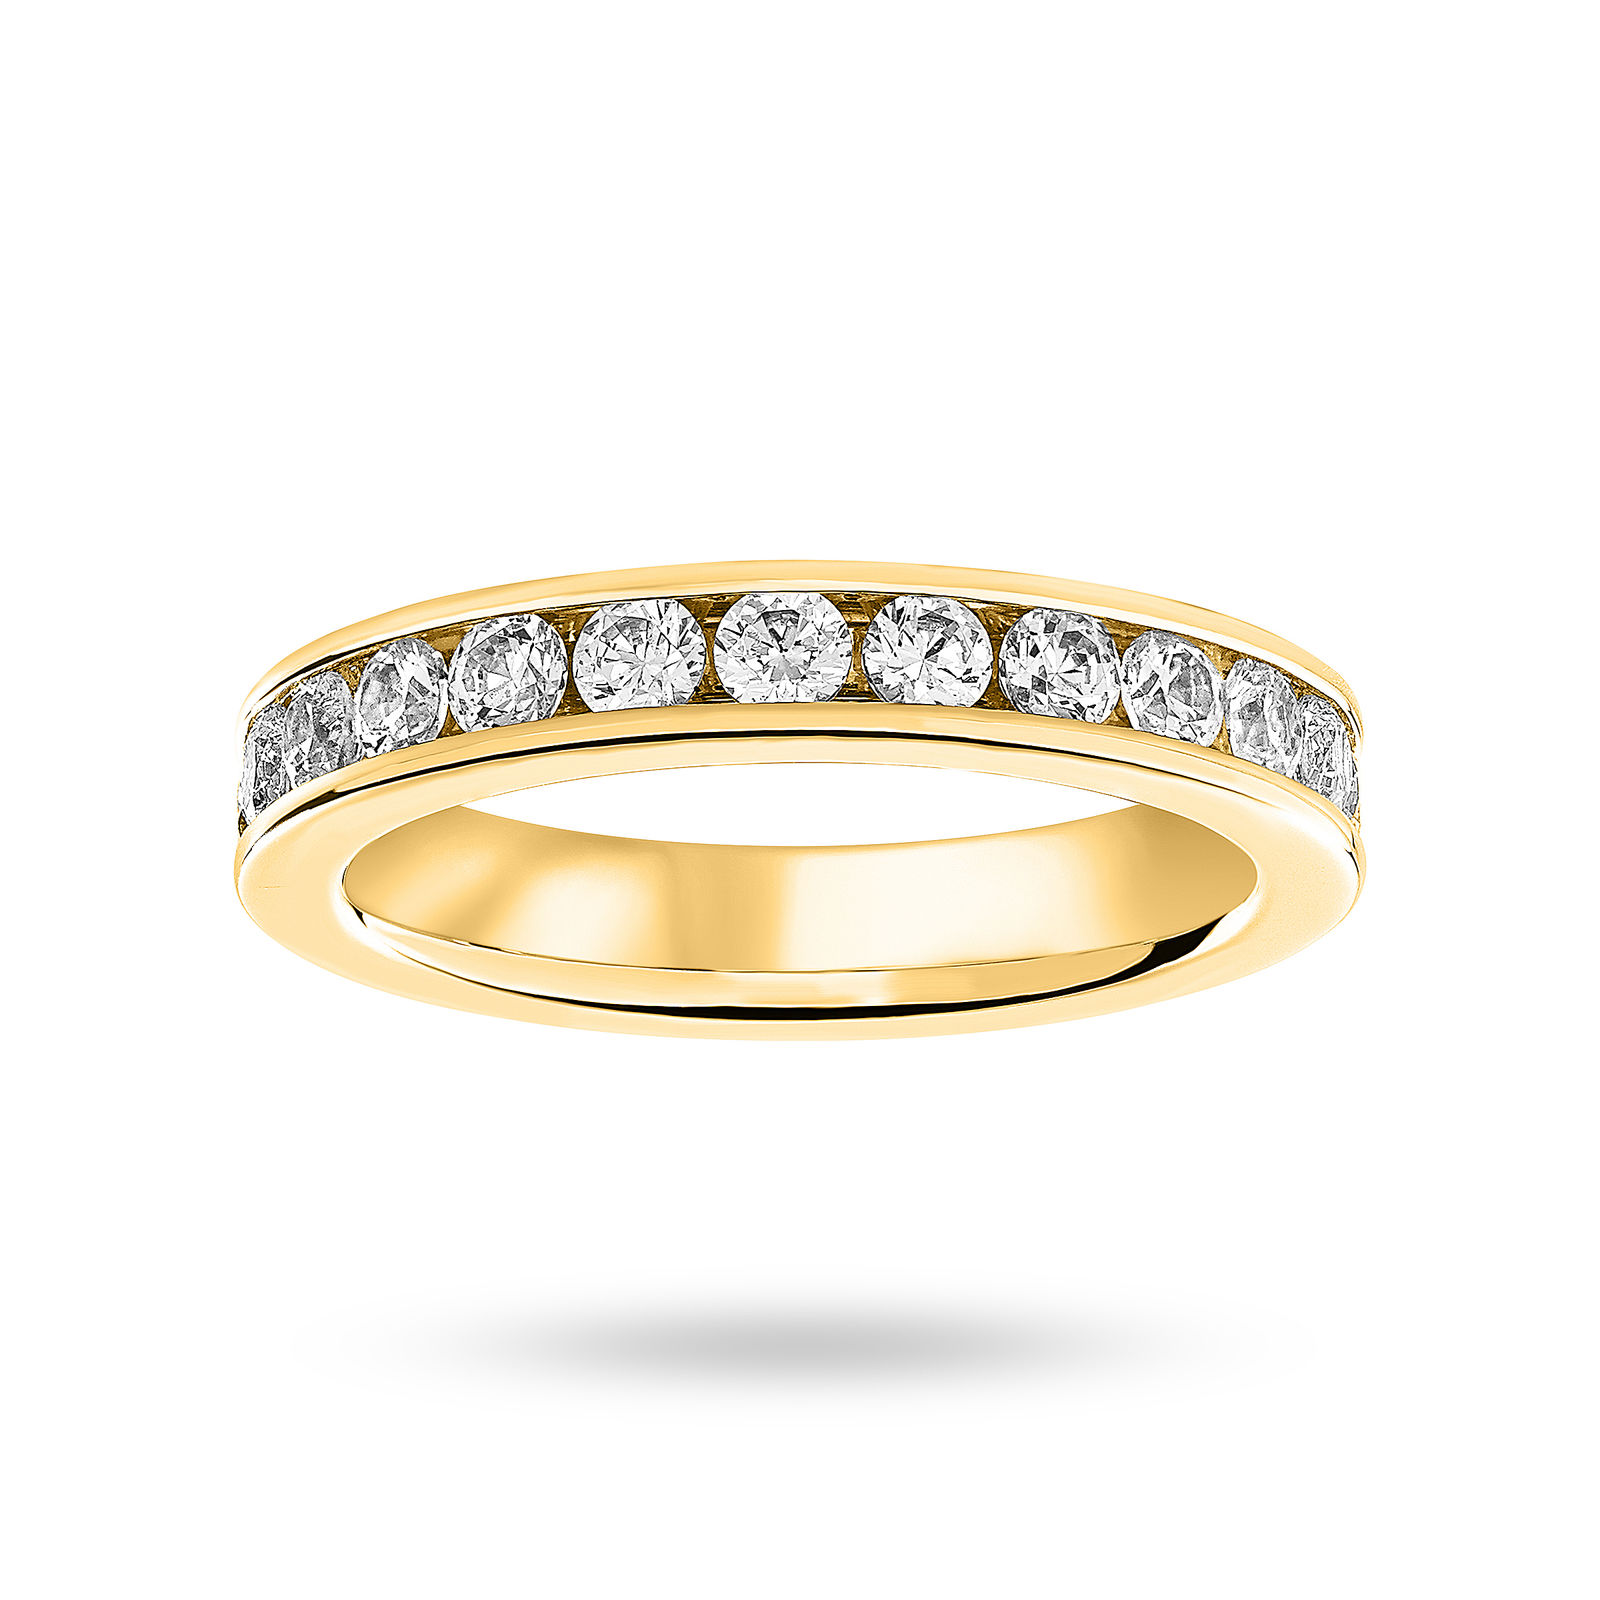 18 Carat Yellow Gold 0.27 Carat Brilliant Cut Channel Set Half Eternity Ring